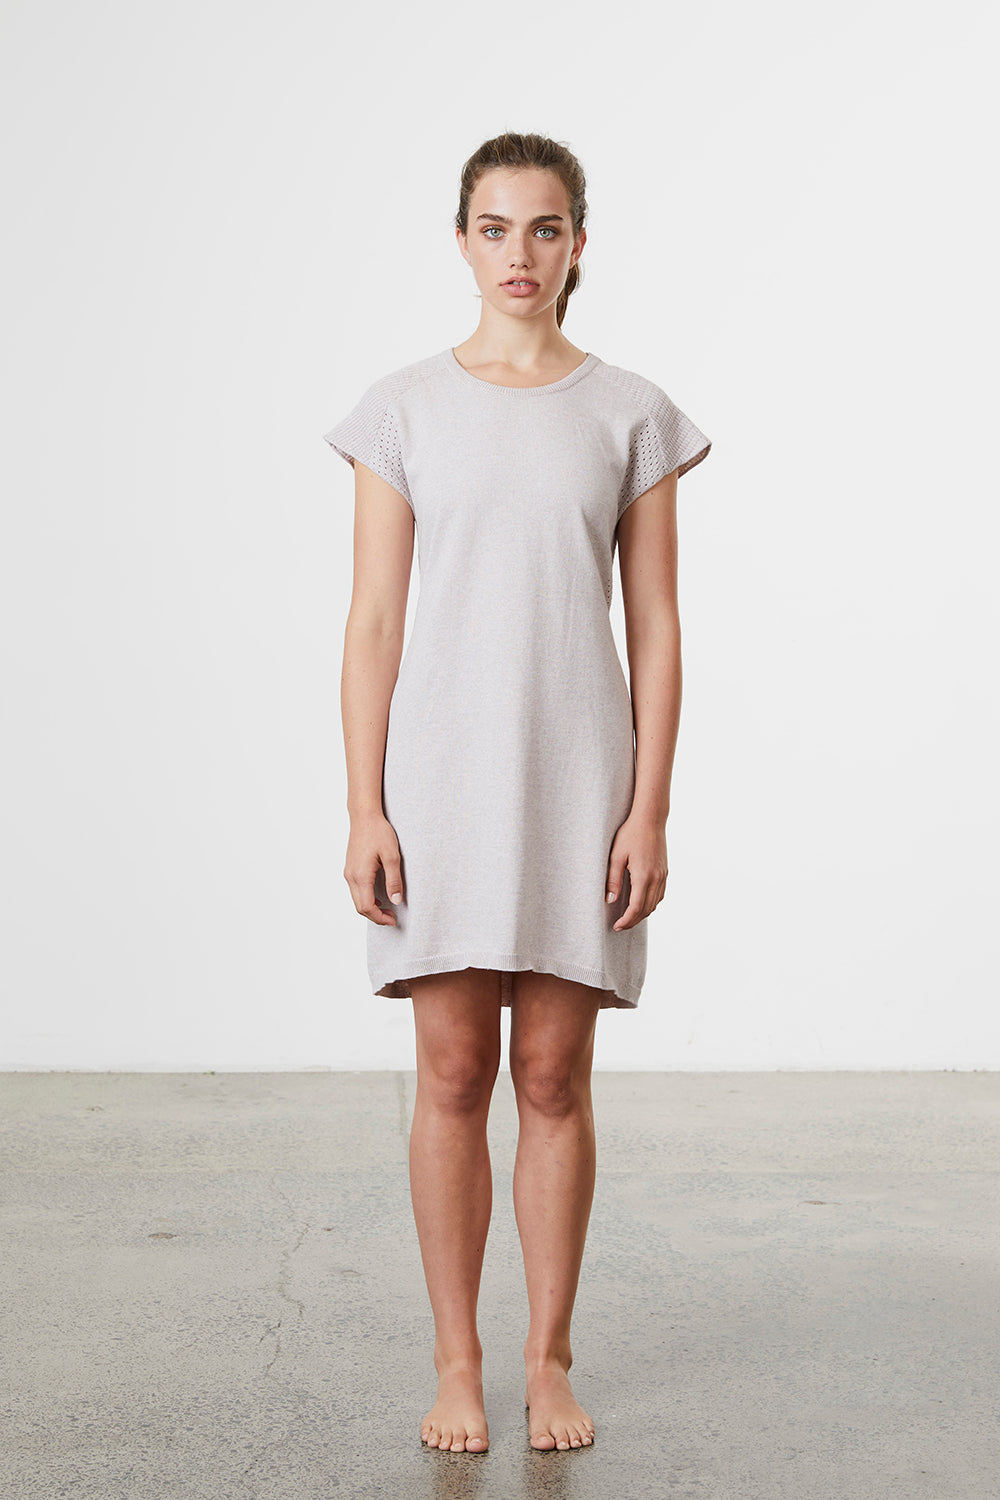 Balance Dress - Standard Issue